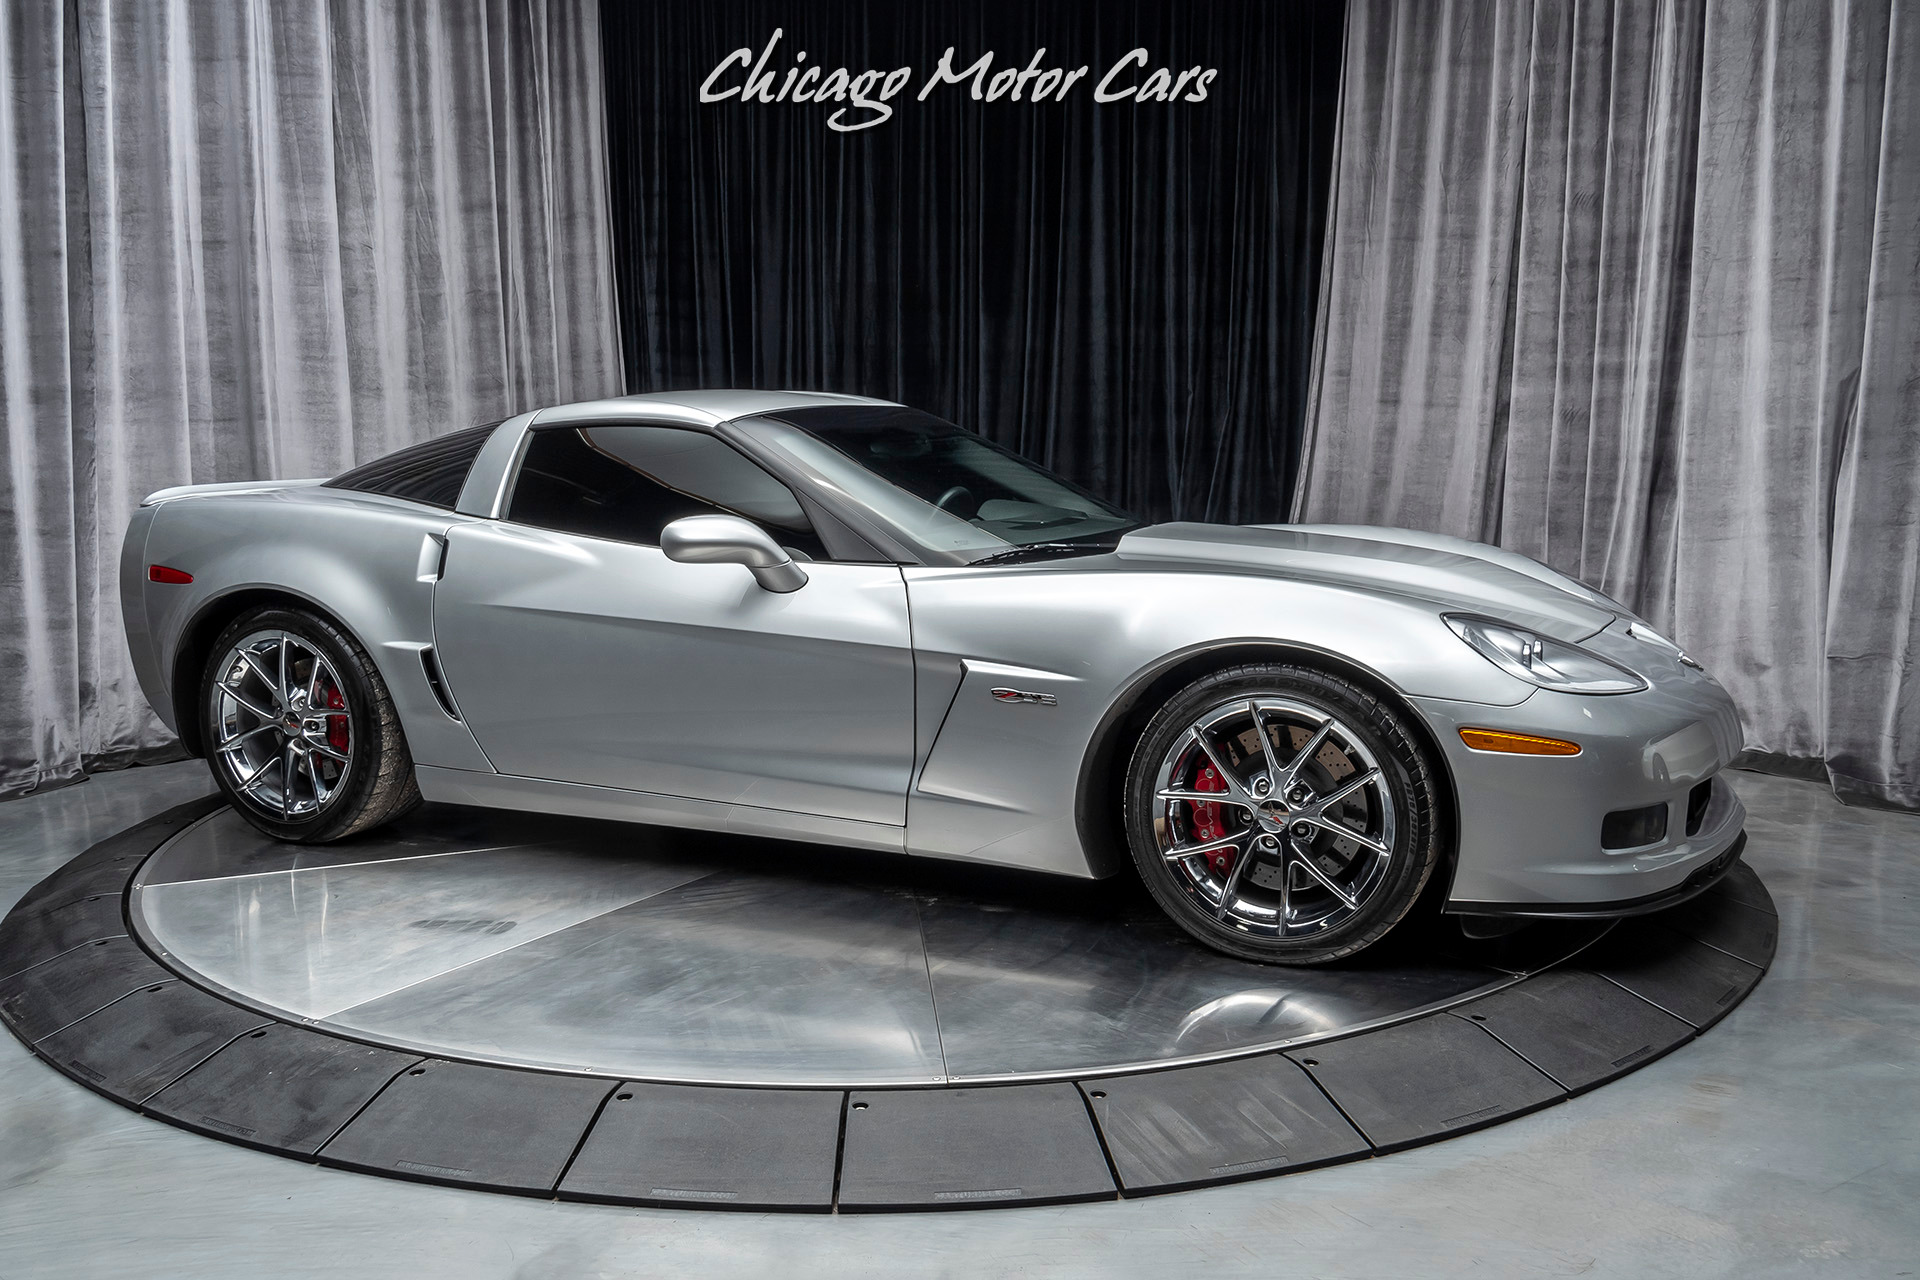 Used-2012-Chevrolet-Corvette-Z06-1LZ-Coupe-6-SPEED-MANUAL-SPIDER-DESIGN-Z06-CHROME-WHEELS